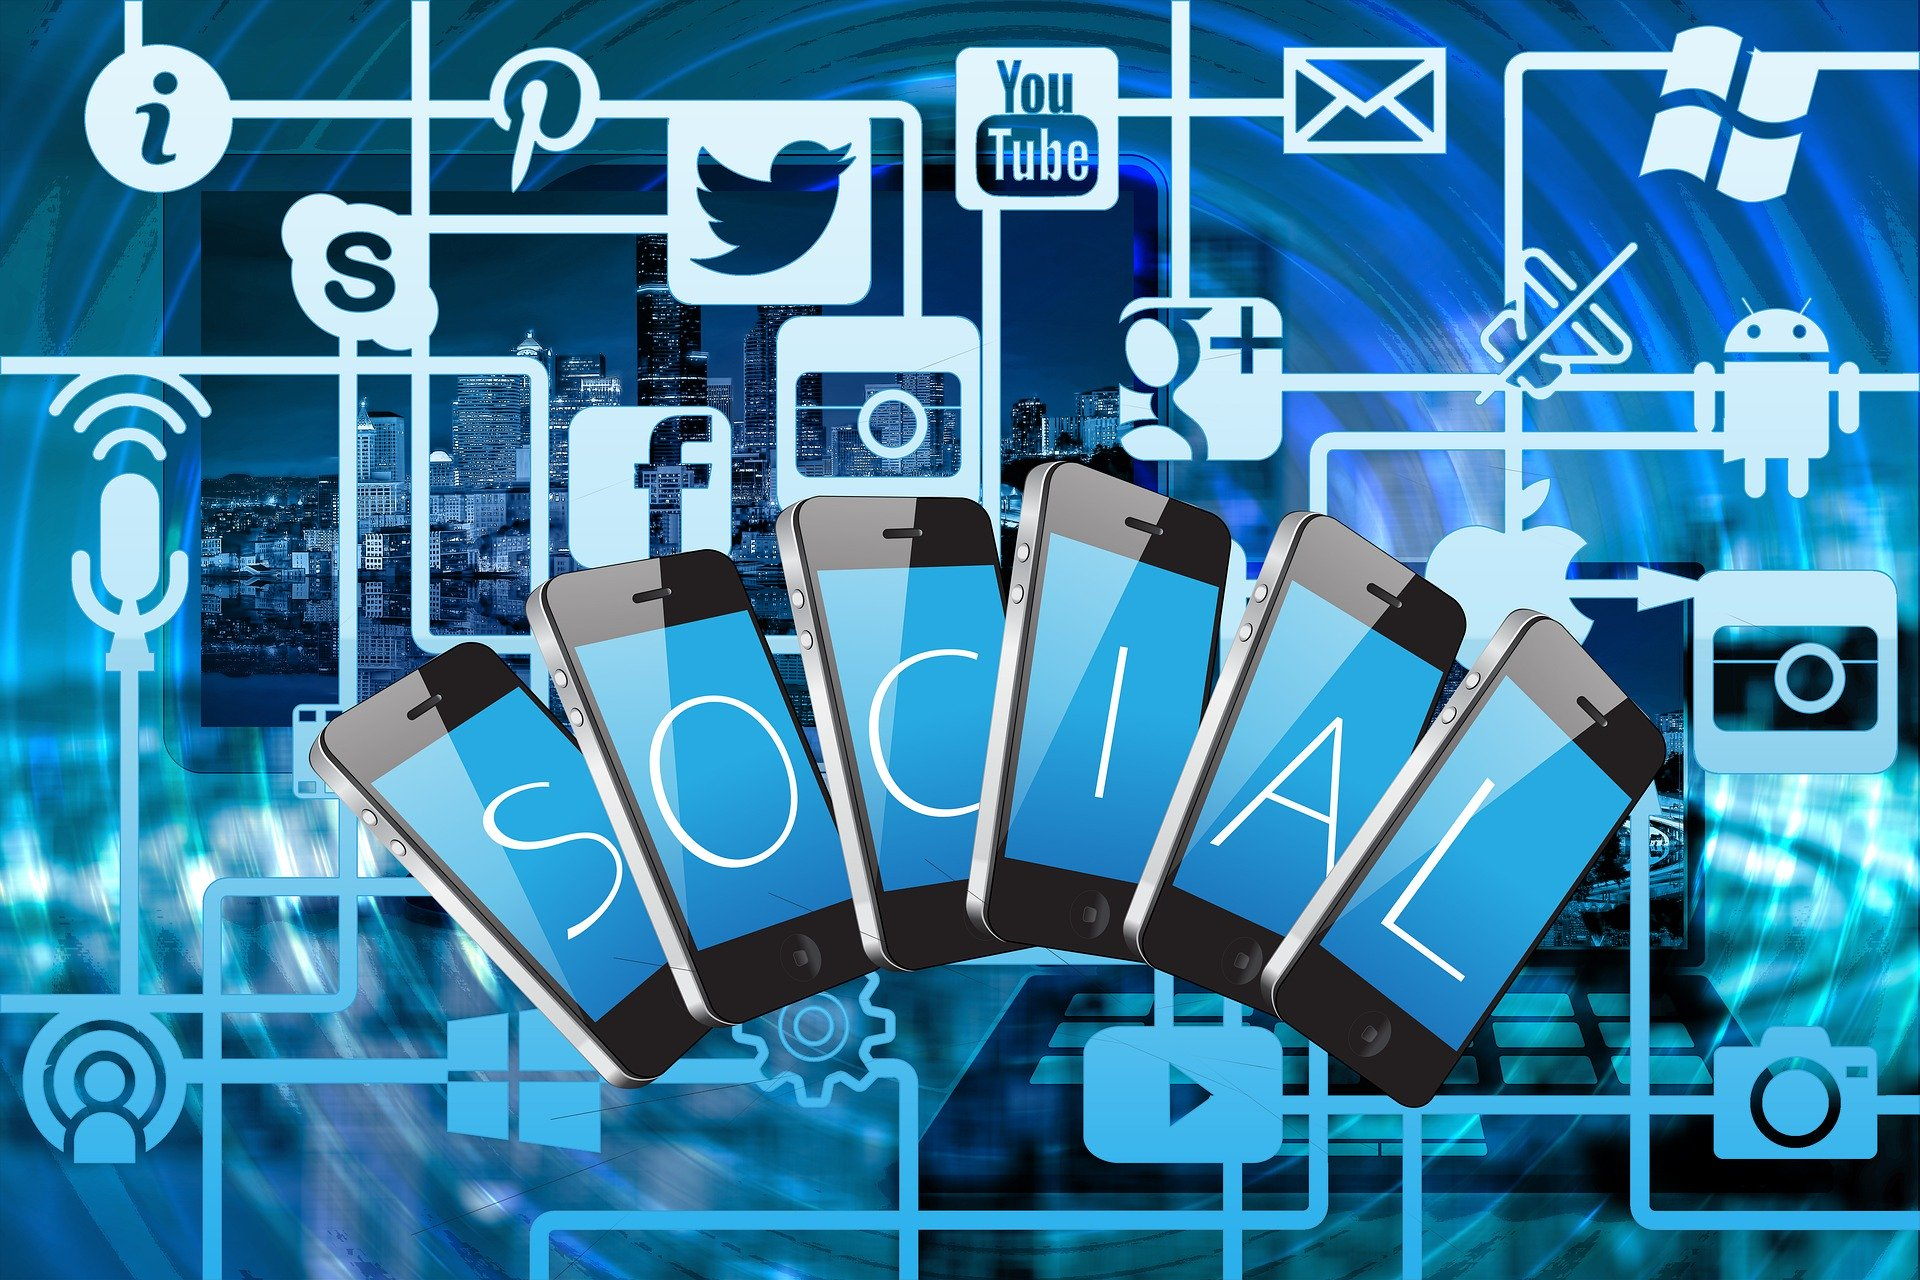 Can Absolute Reliability standards be applied to social media platforms